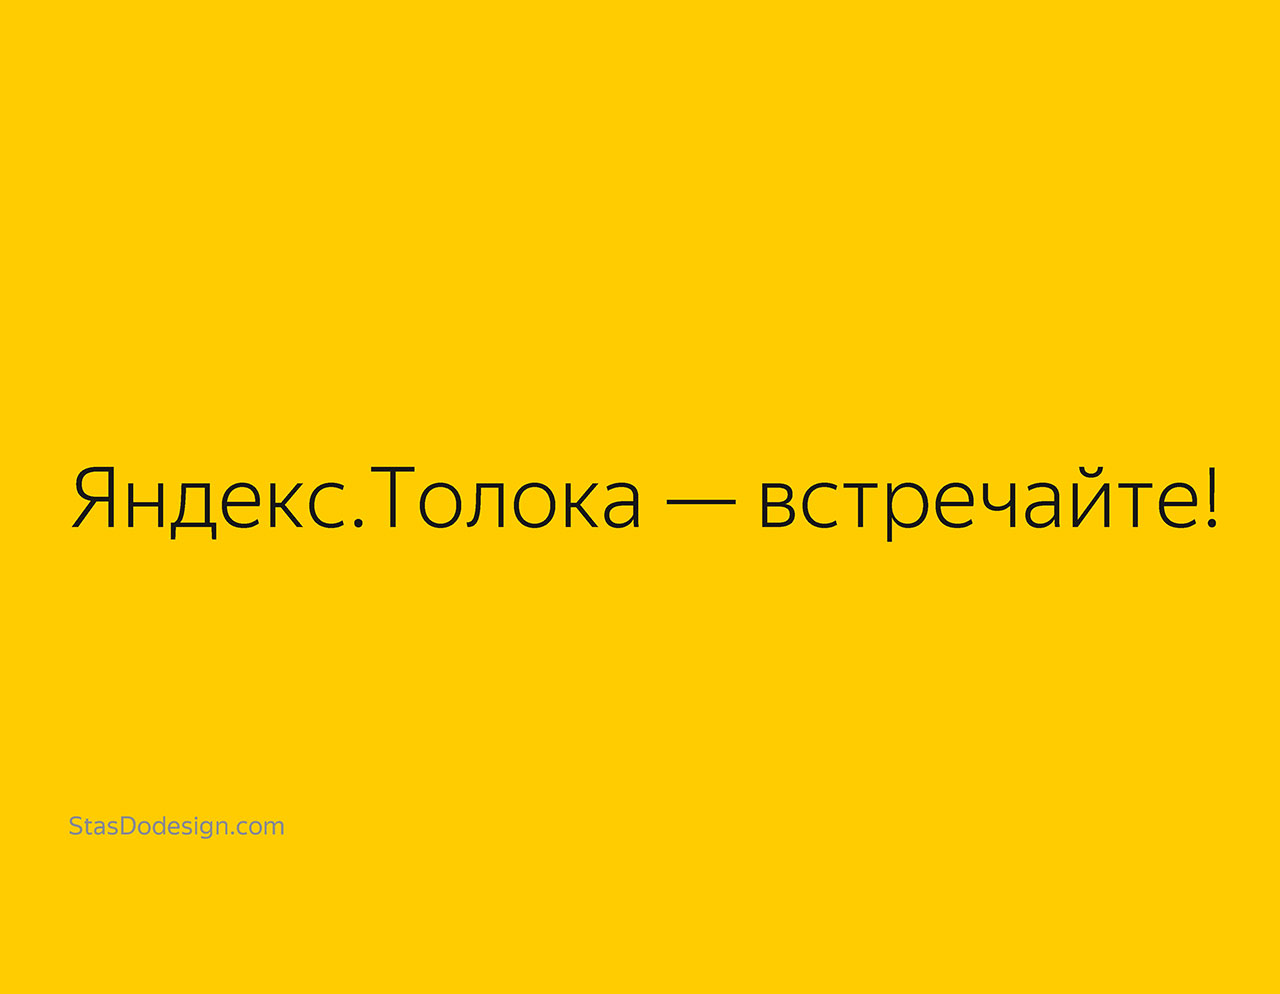 Презентация для Яндекс. Yandex presentation by StasDoDesign #StasDoDesign